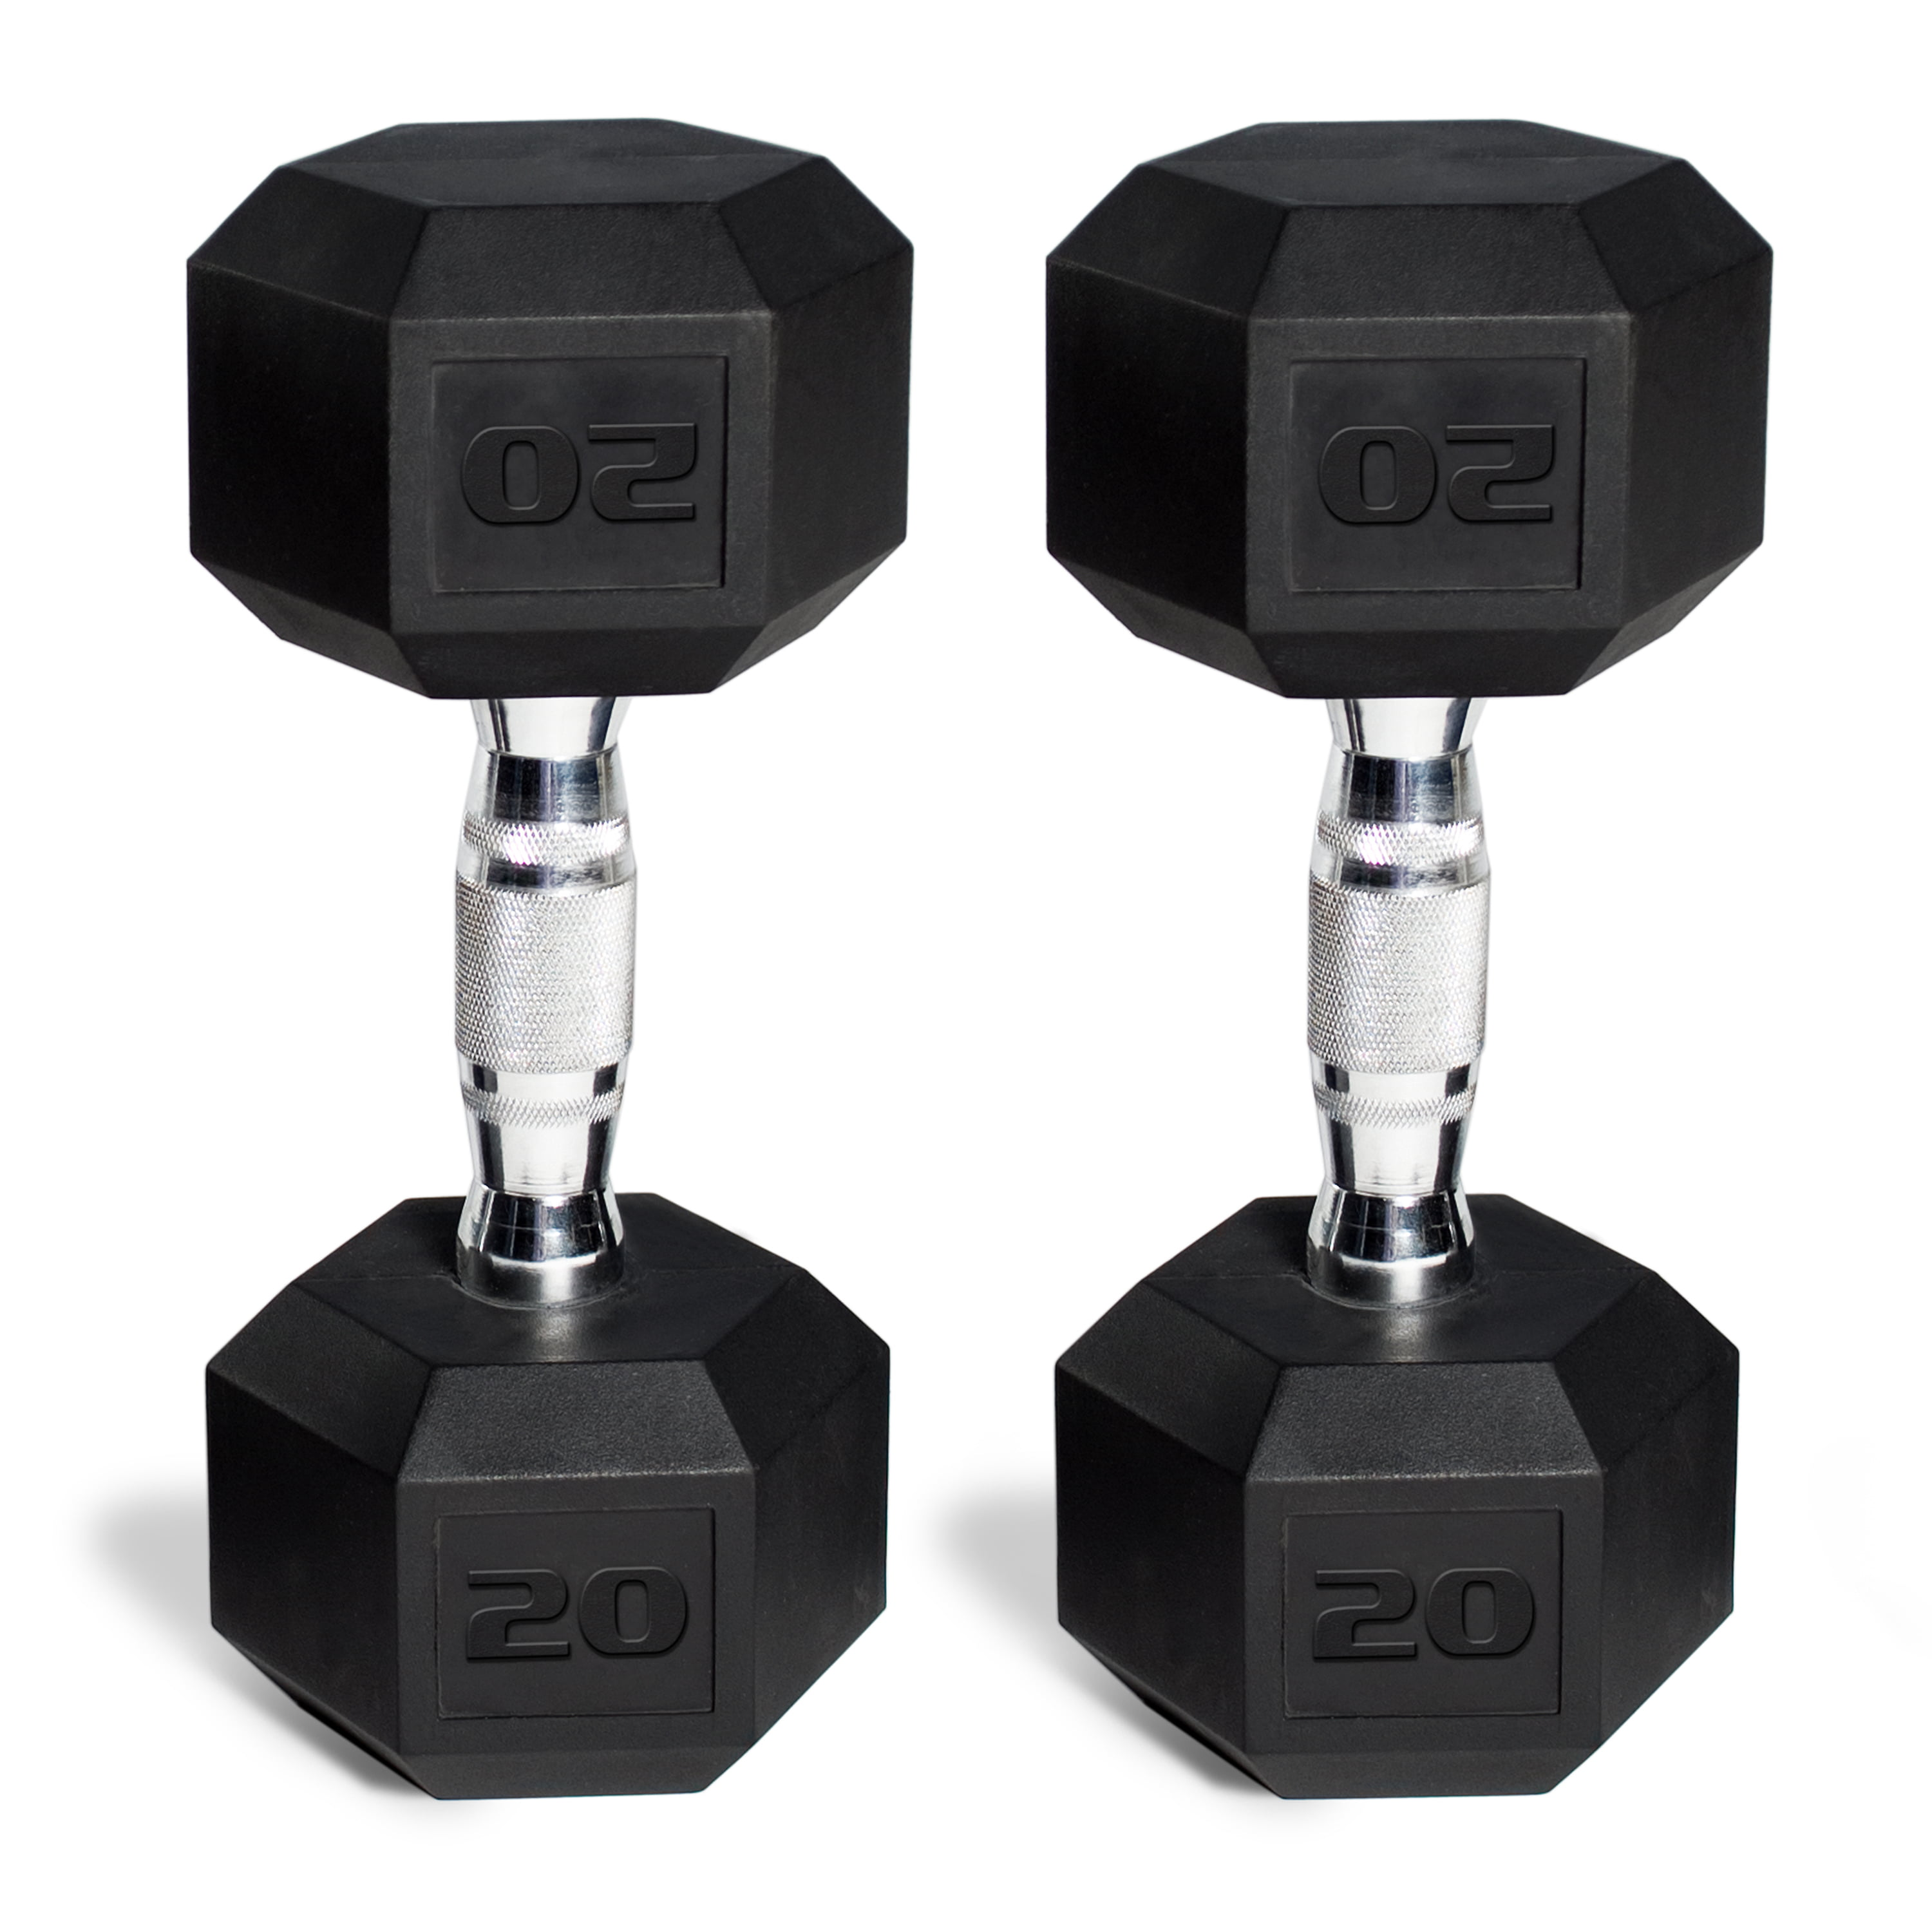 30 pounds 1 Pair Weight Loss Workout Bench Gym Equipment Barbell Coated Hex Dumbbell Weights,Barbell Set of 2 Hex Rubber Dumbbell with Metal Handles Pair of 2 Heavy Dumbbell Or Strength Training